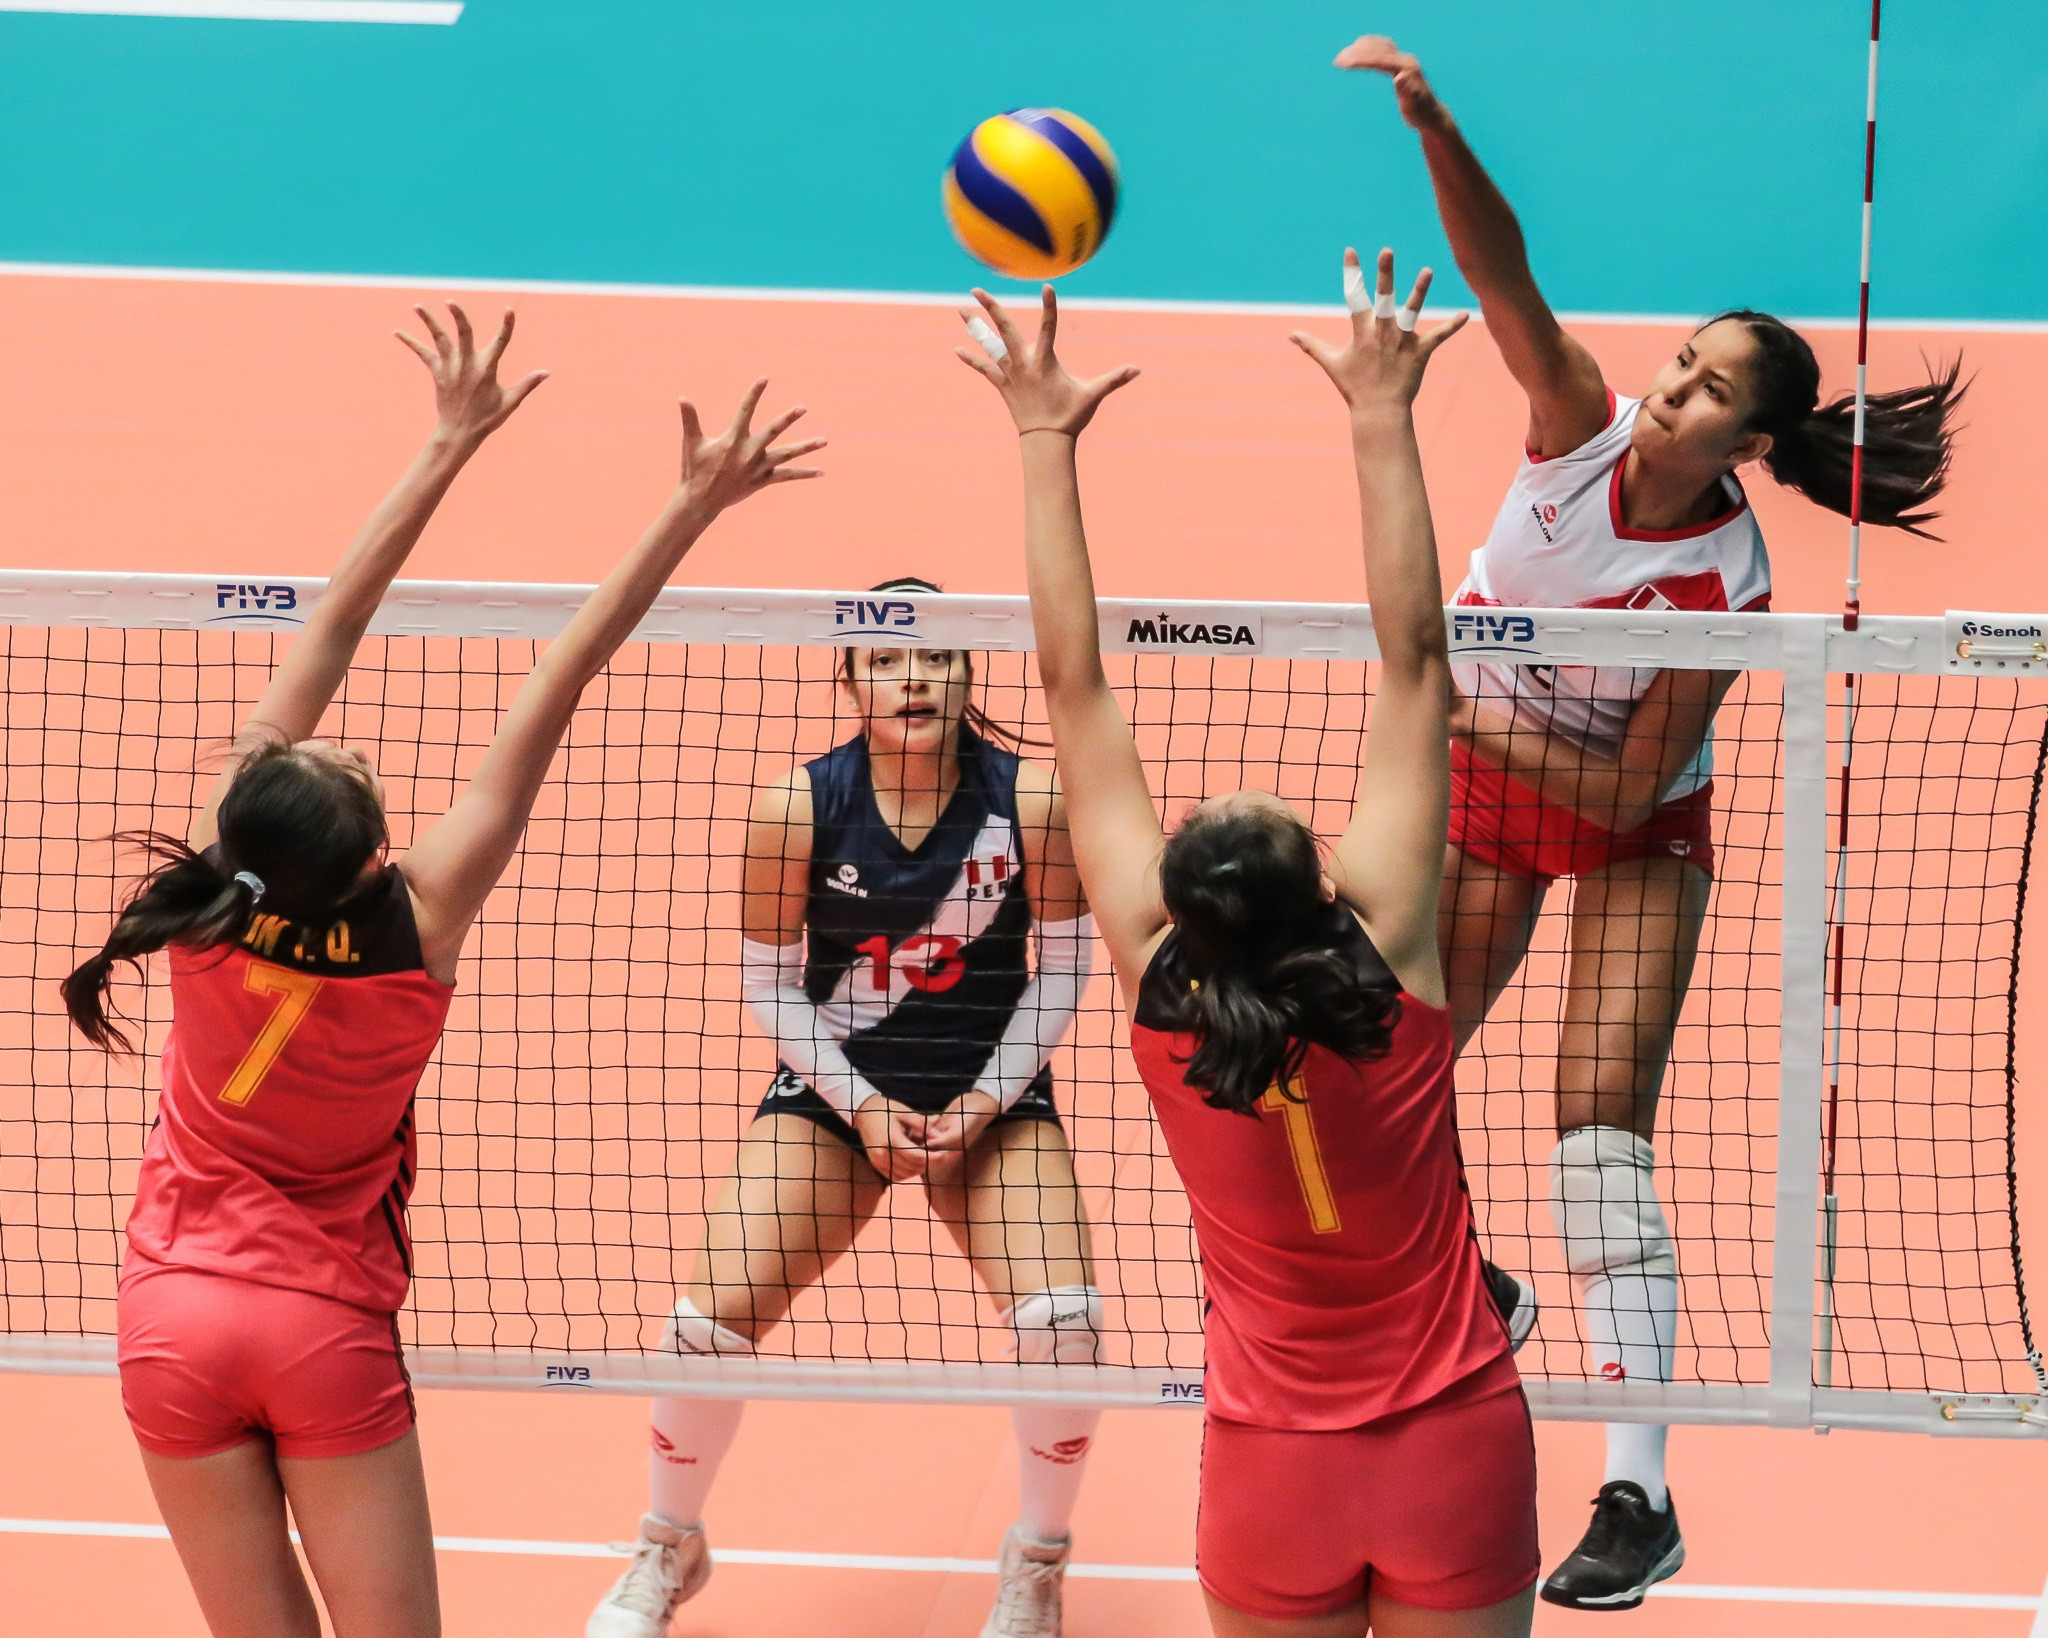 Defending champions China fell to defeat against Peru on the opening day of the FIVB Women's Under-20 World Championship in Mexico ©FIVB